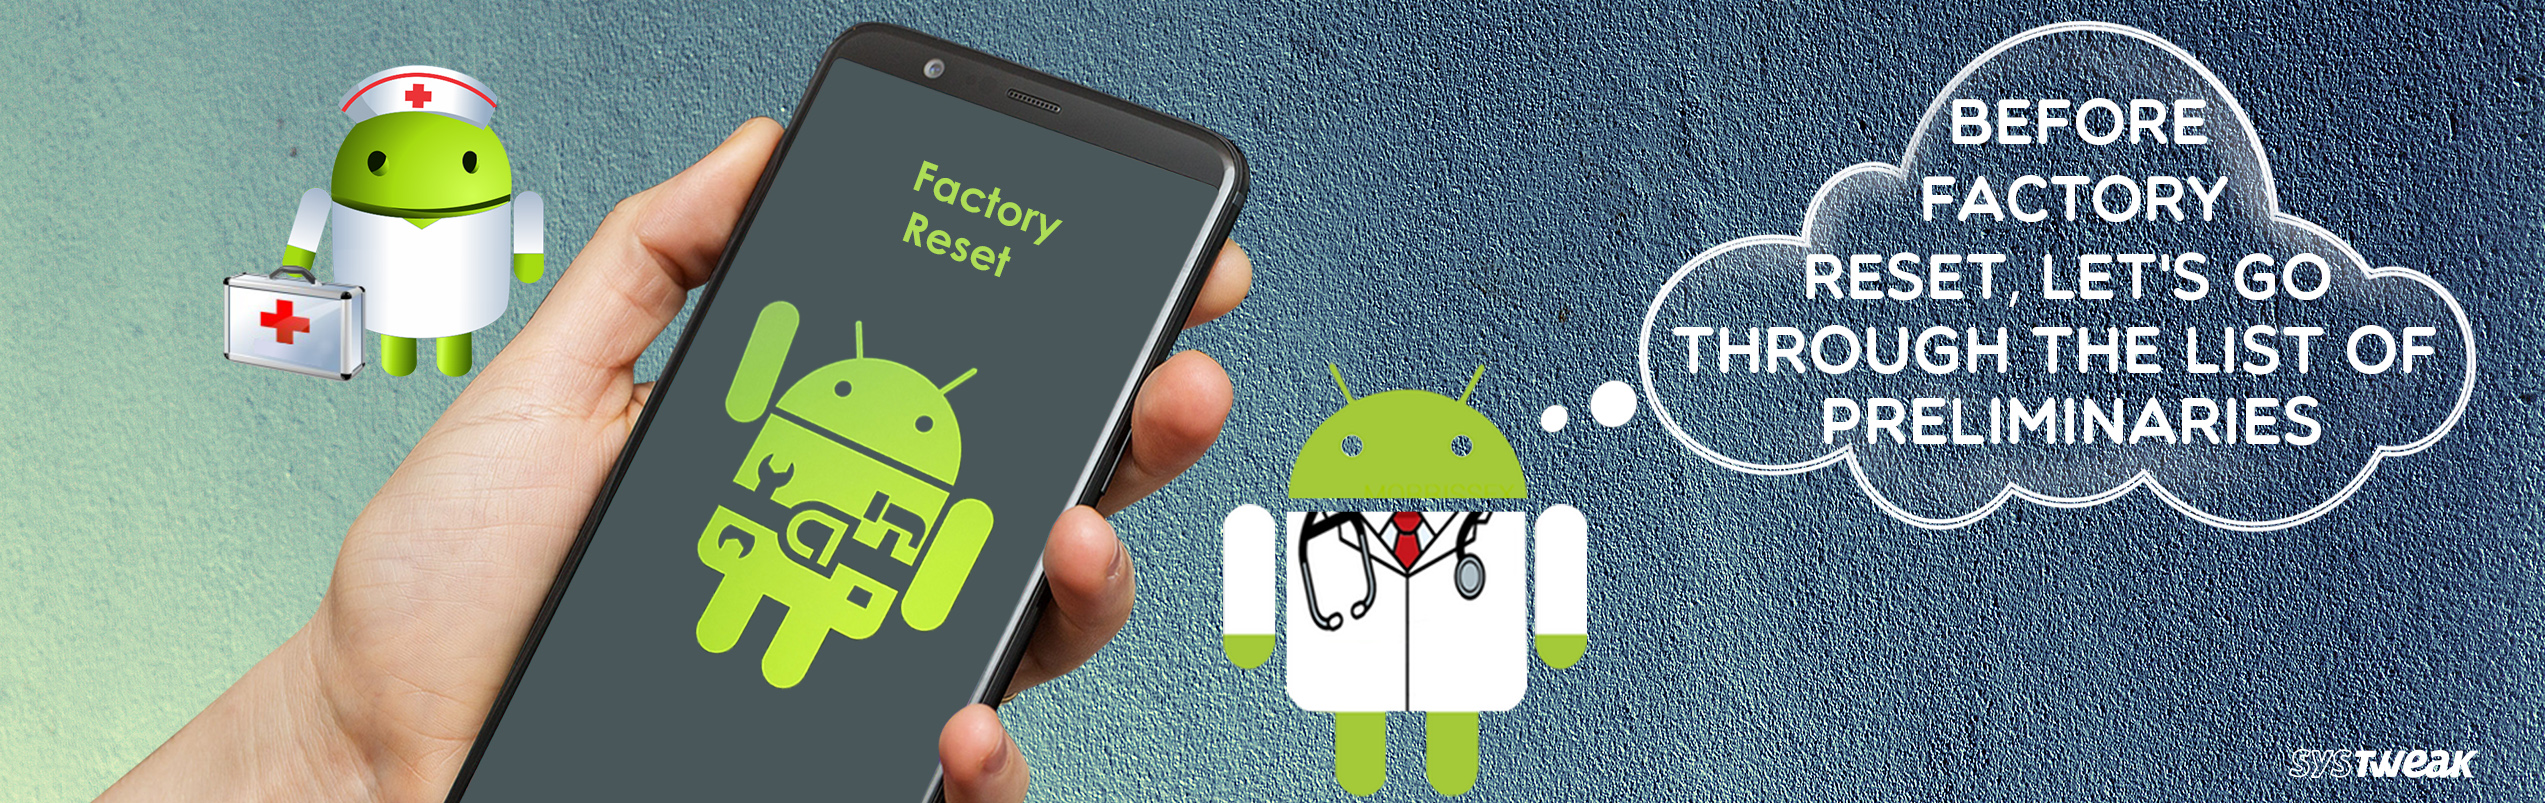 5 Things To Remember Before Factory Resetting Your Android